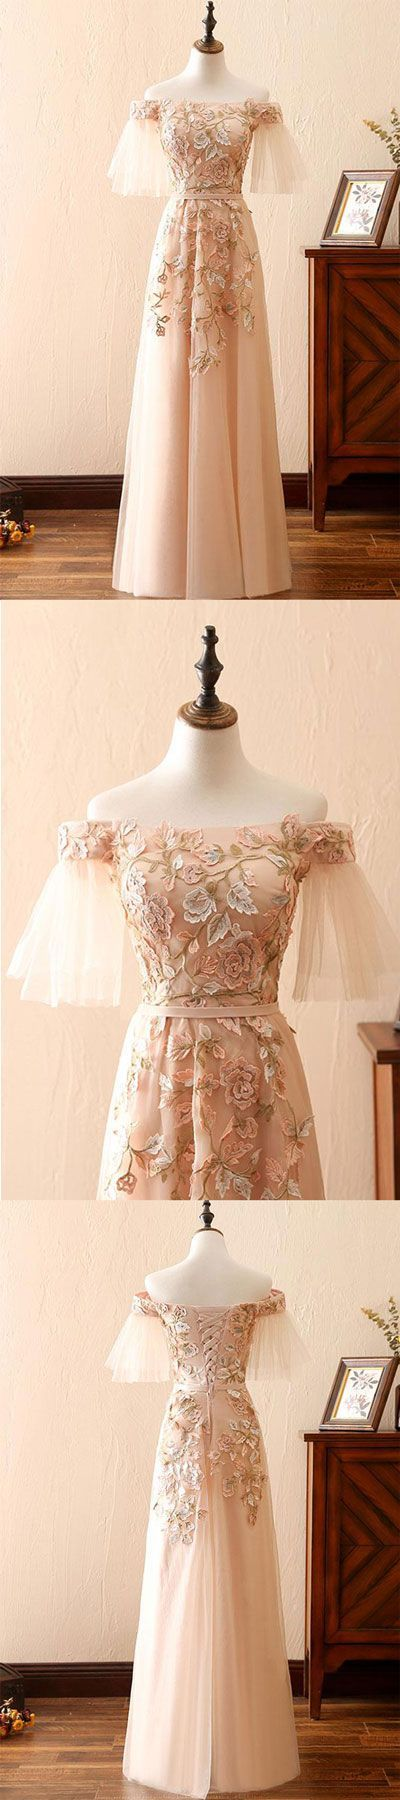 Champagne tulle long prom dress, champagne tulle lace applique evening dress #longpromdresses